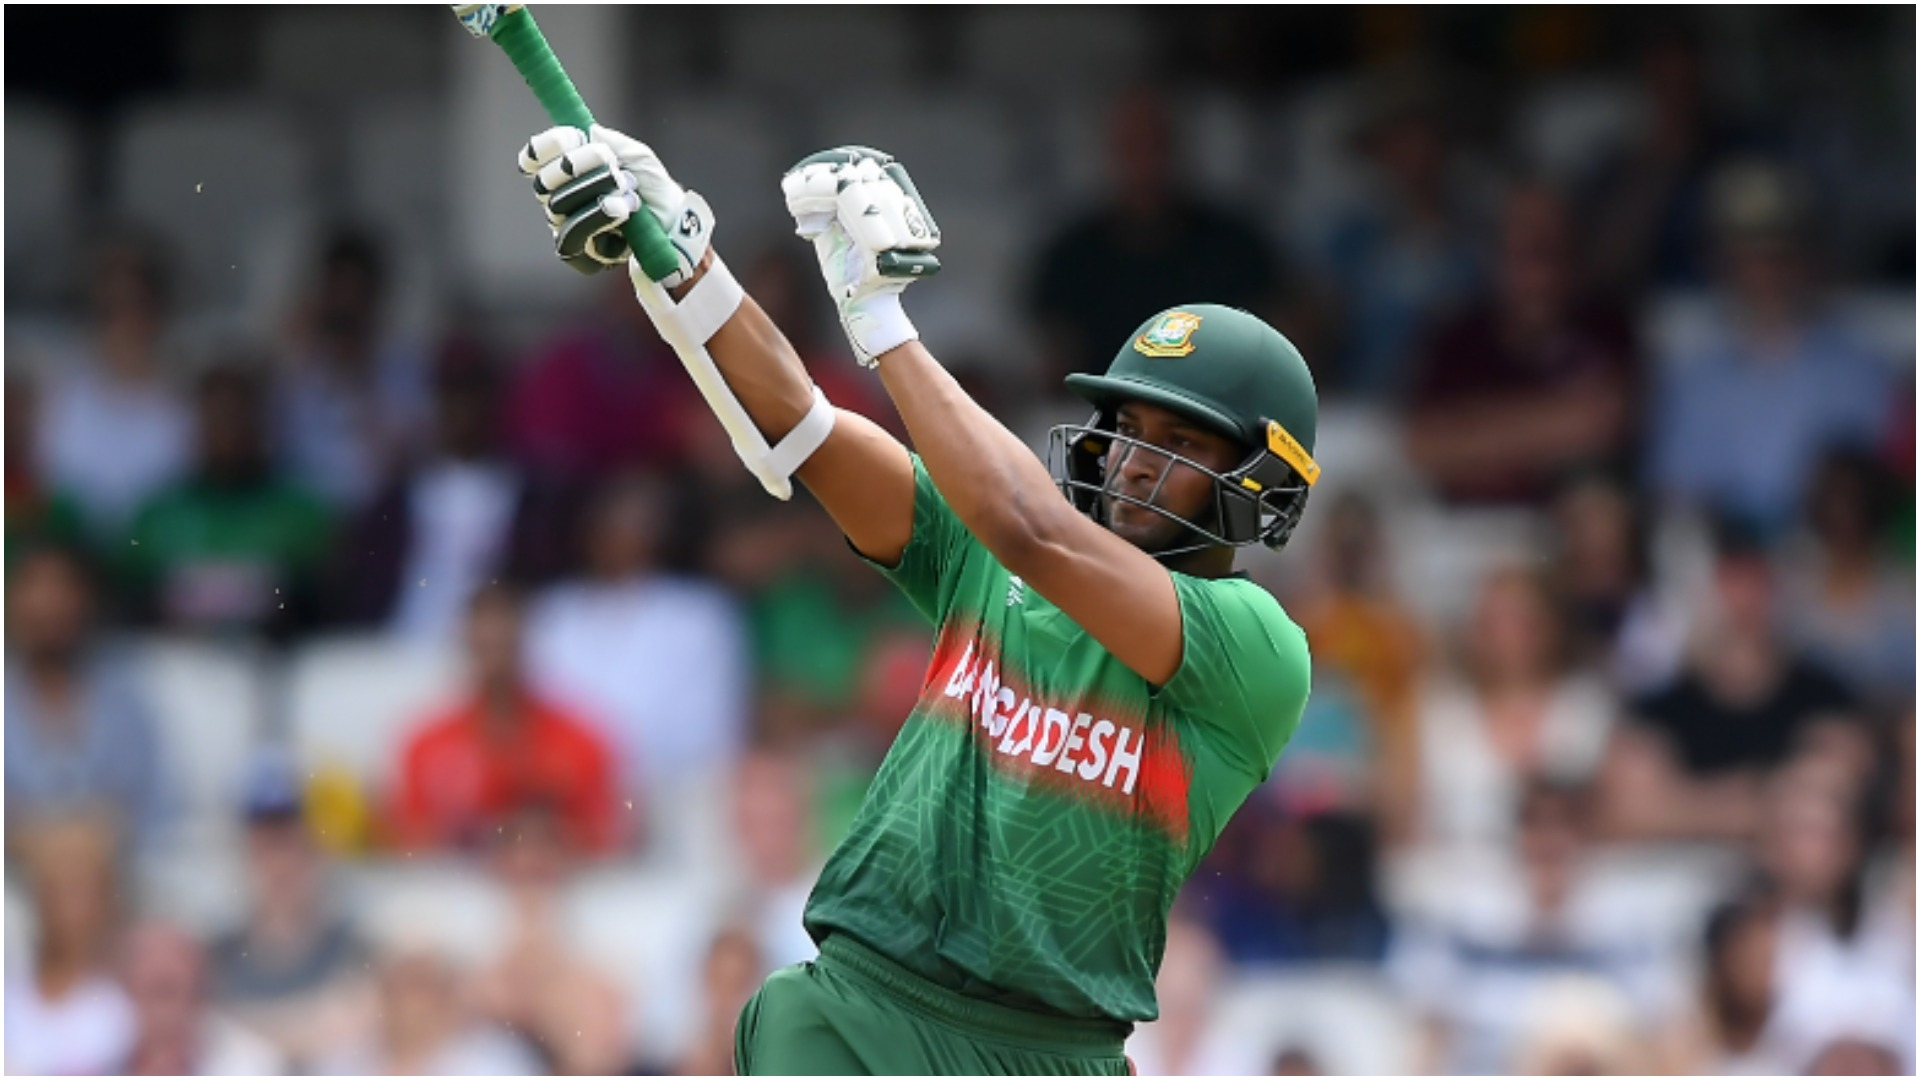 Shakib aiming to build on opening Bangladesh win